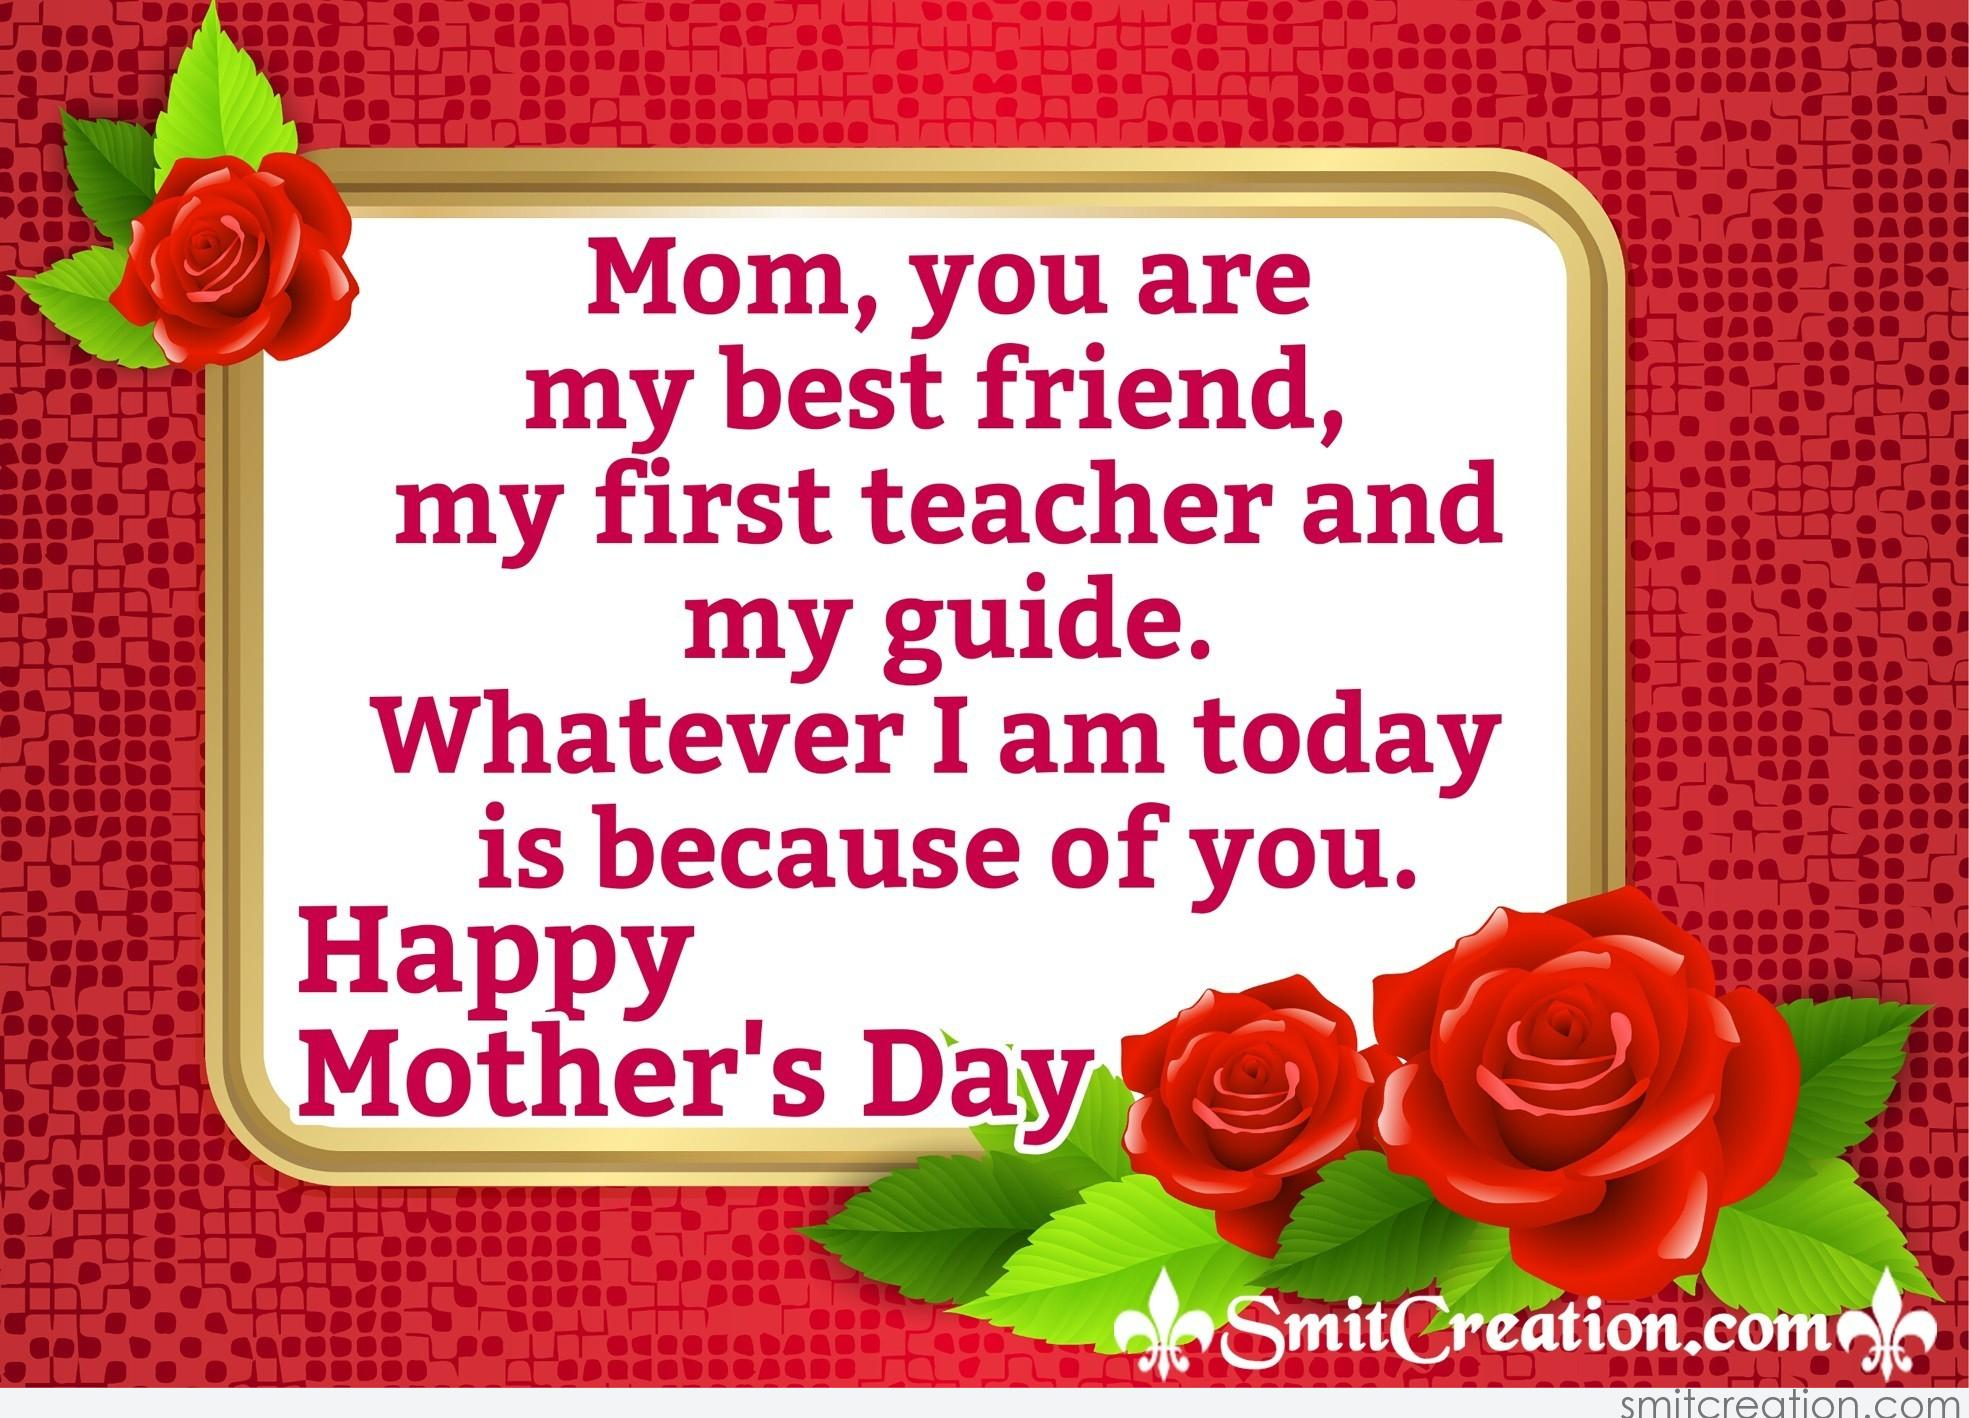 Mothers Day Pictures and Graphics - SmitCreation com